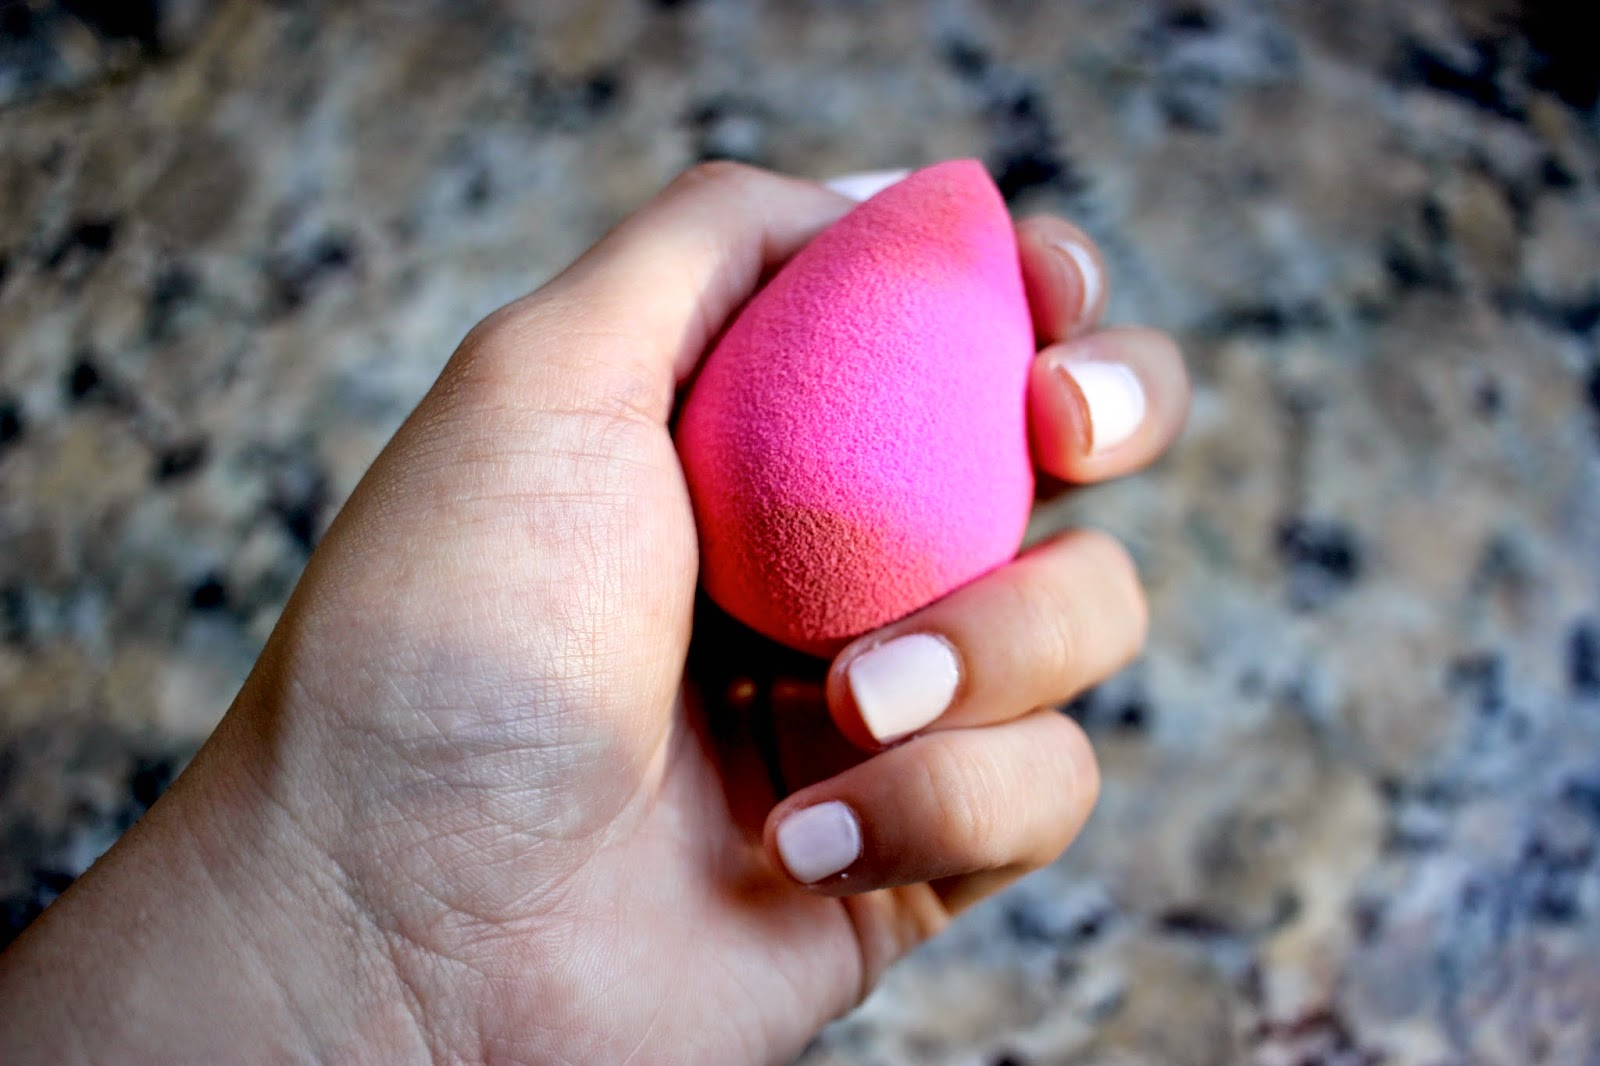 Earth Therapeutics Precisso Beauty Blending Sponge